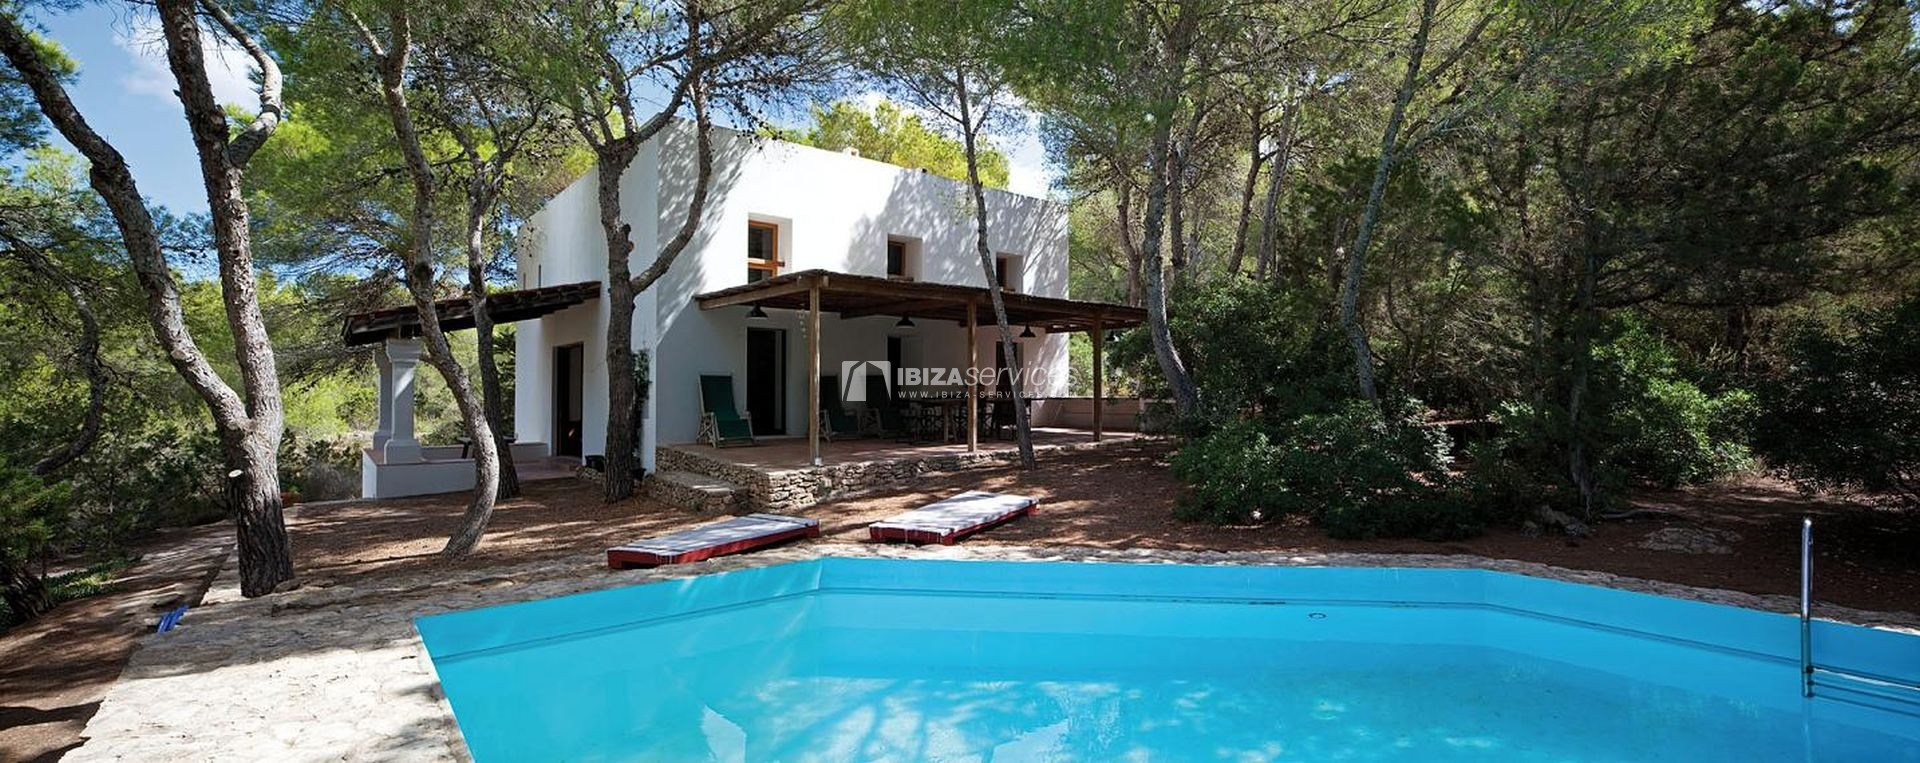 4 bedroom Villa for rent in Formentera perspectiva 11